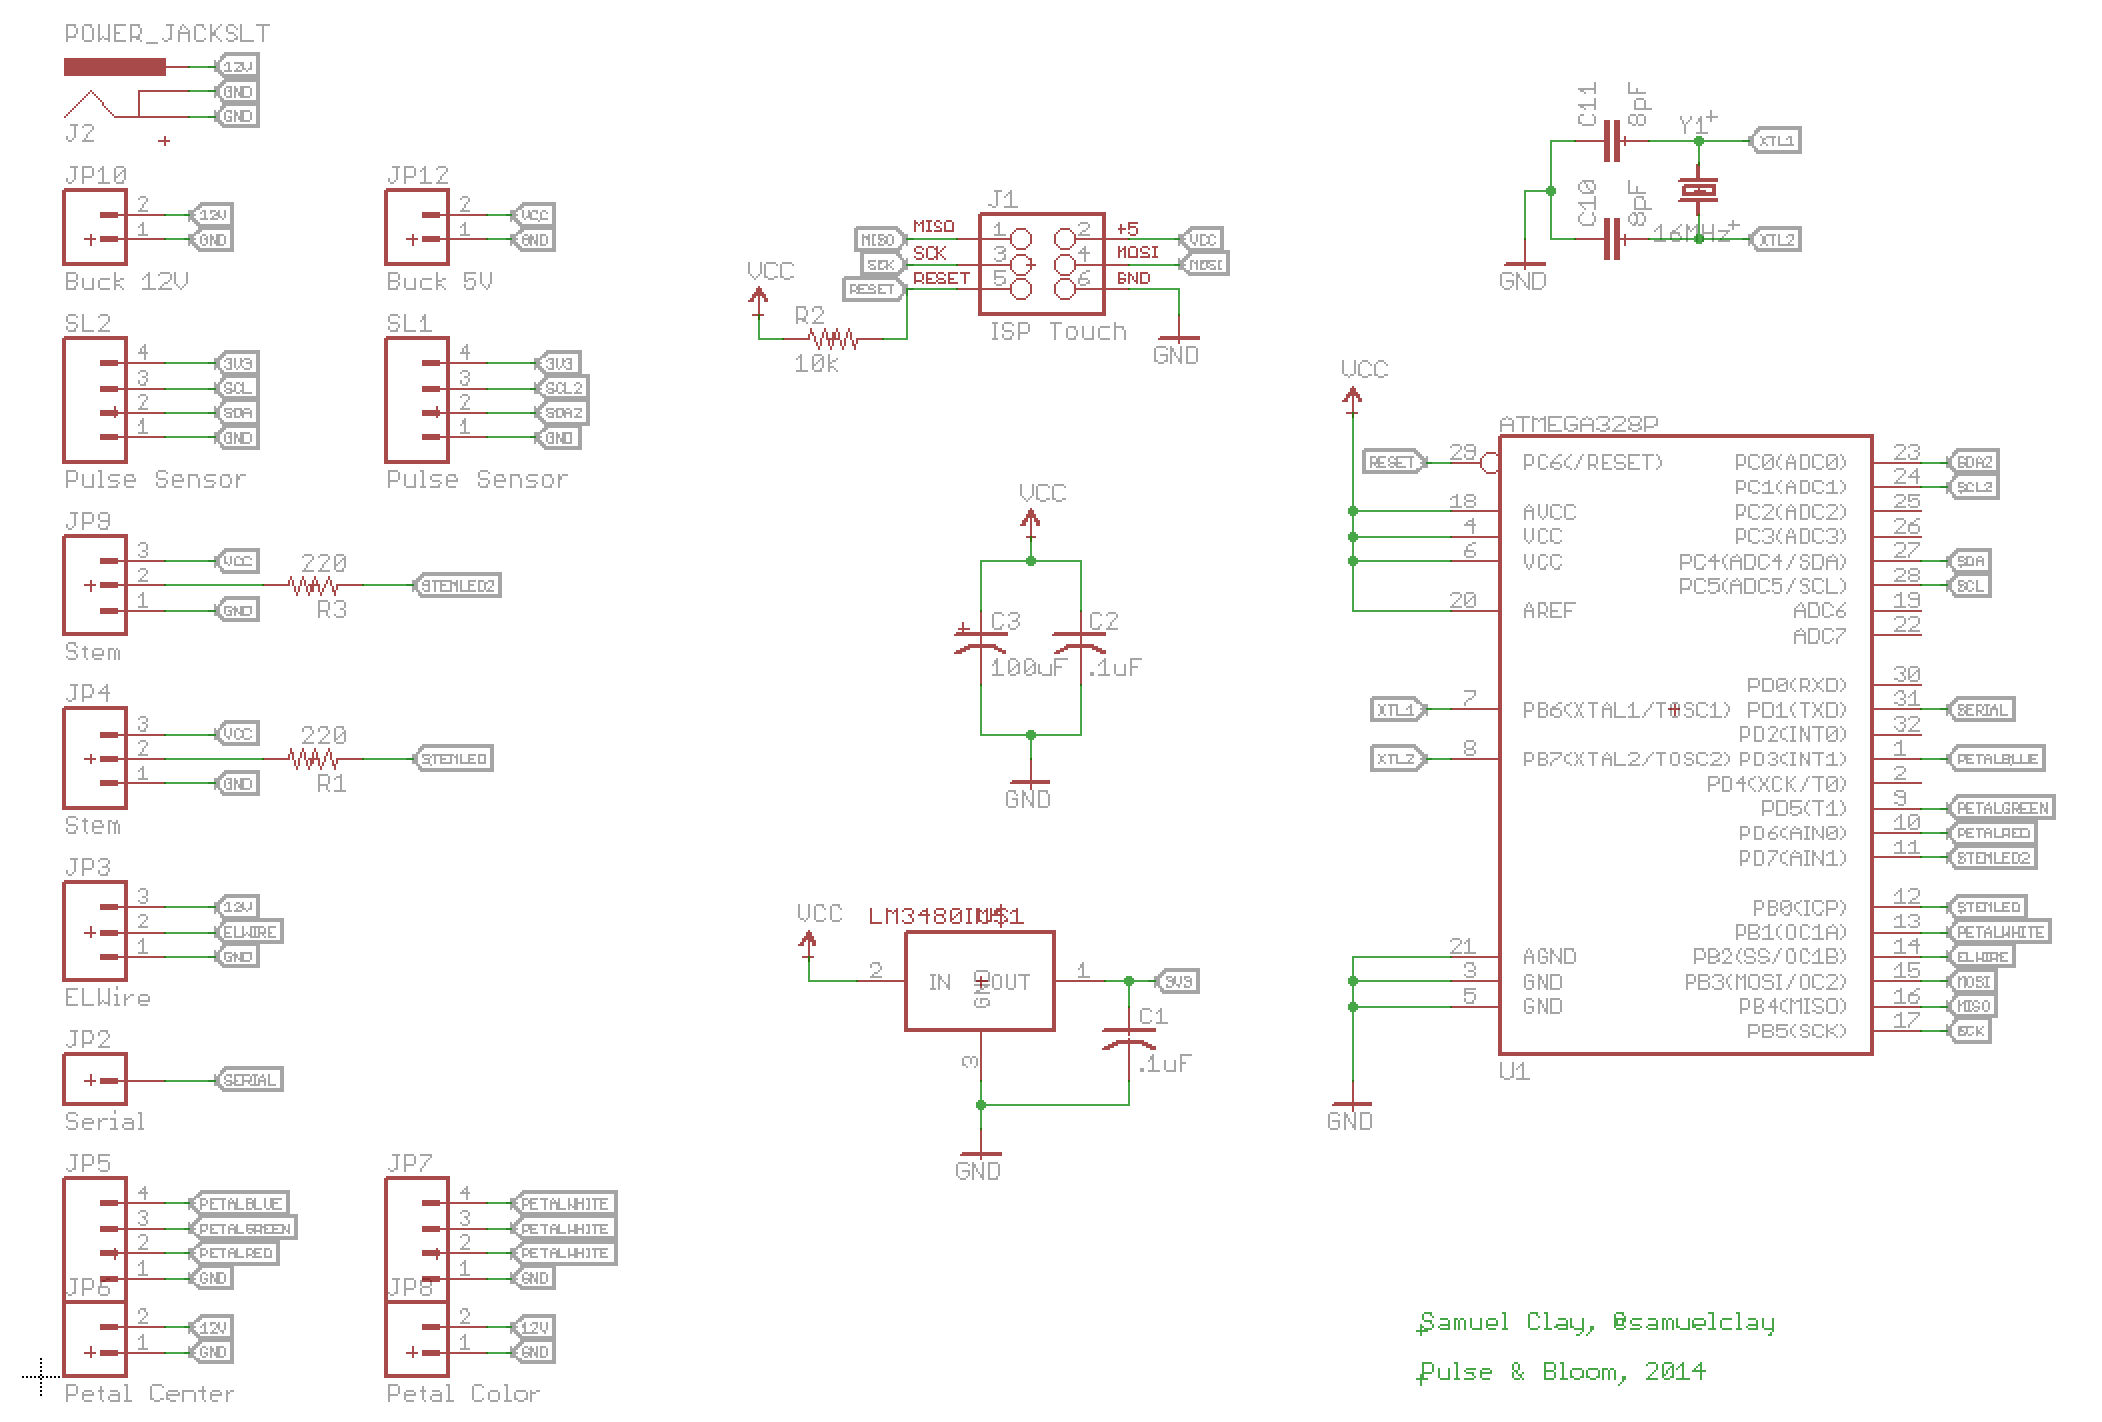 dolphin gauges wiring diagram for telephone wall socket pulse generator